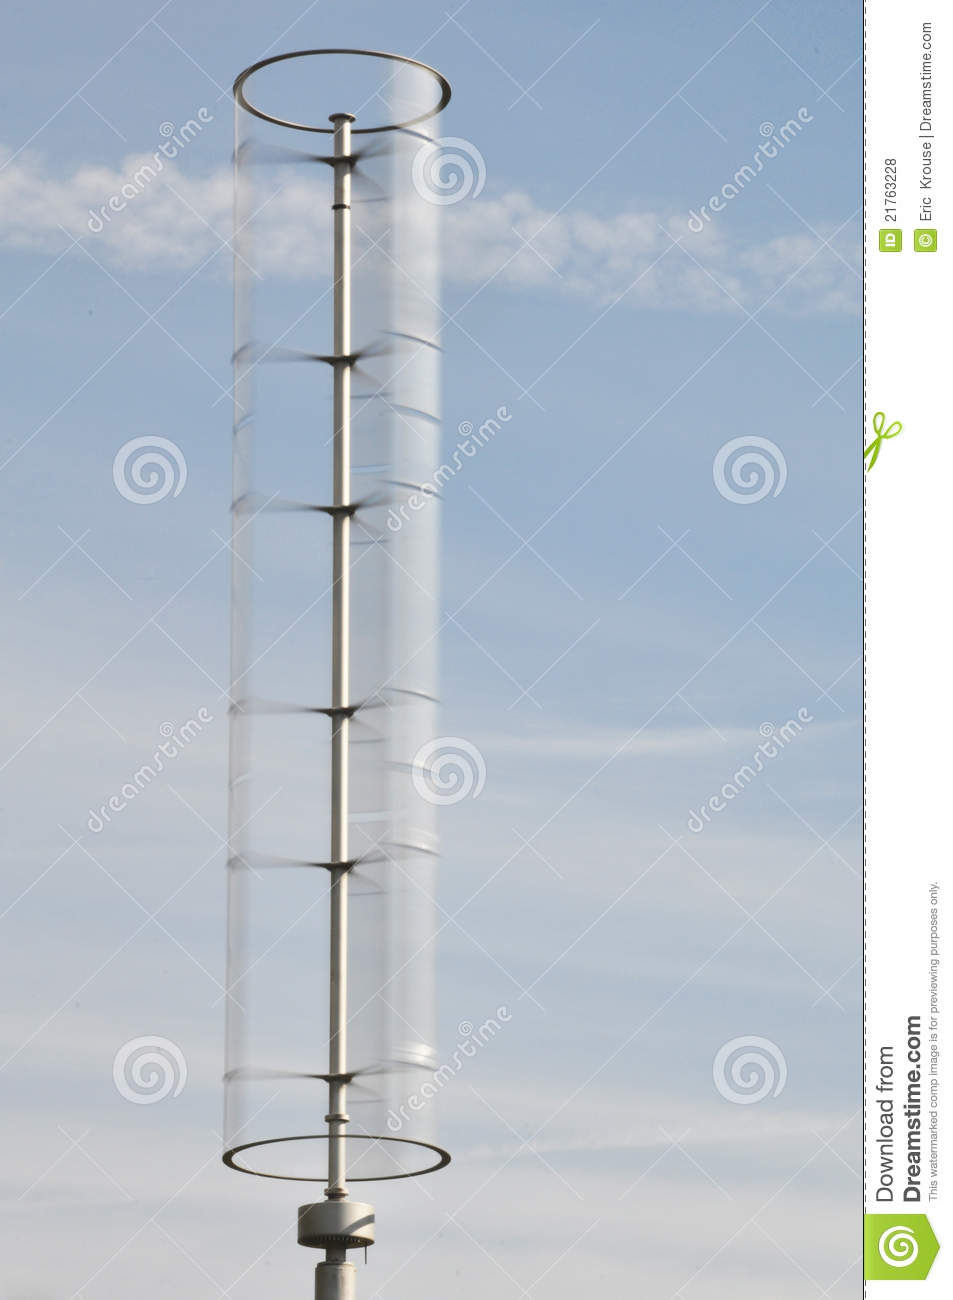 Modern Vertical Axis Wind Turbine Stock Photo - Image of